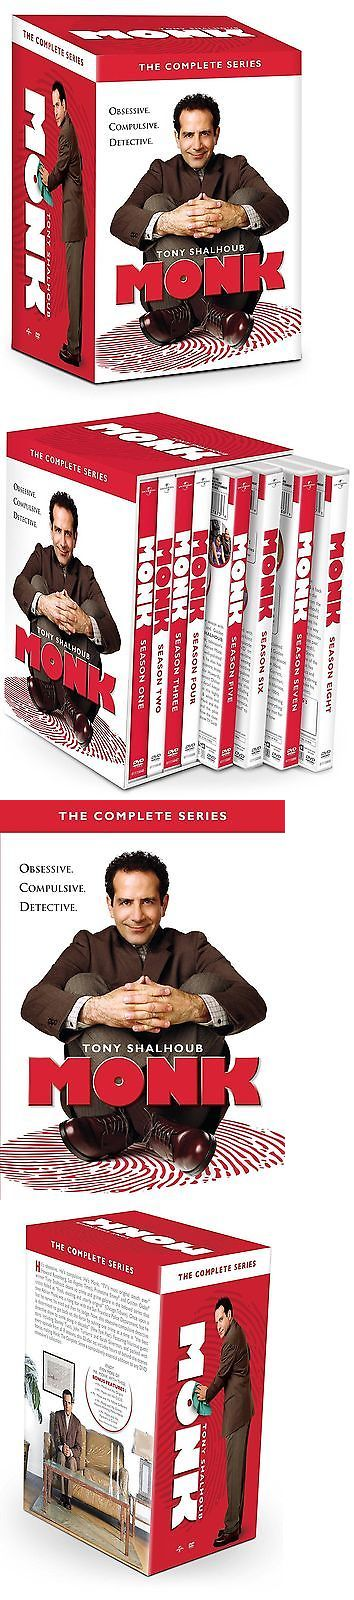 cds dvds vhs: Monk The Complete Dvd Series Collection Seasons 1-8 (32 Disc Set) -> BUY IT NOW ONLY: $51.95 on eBay!